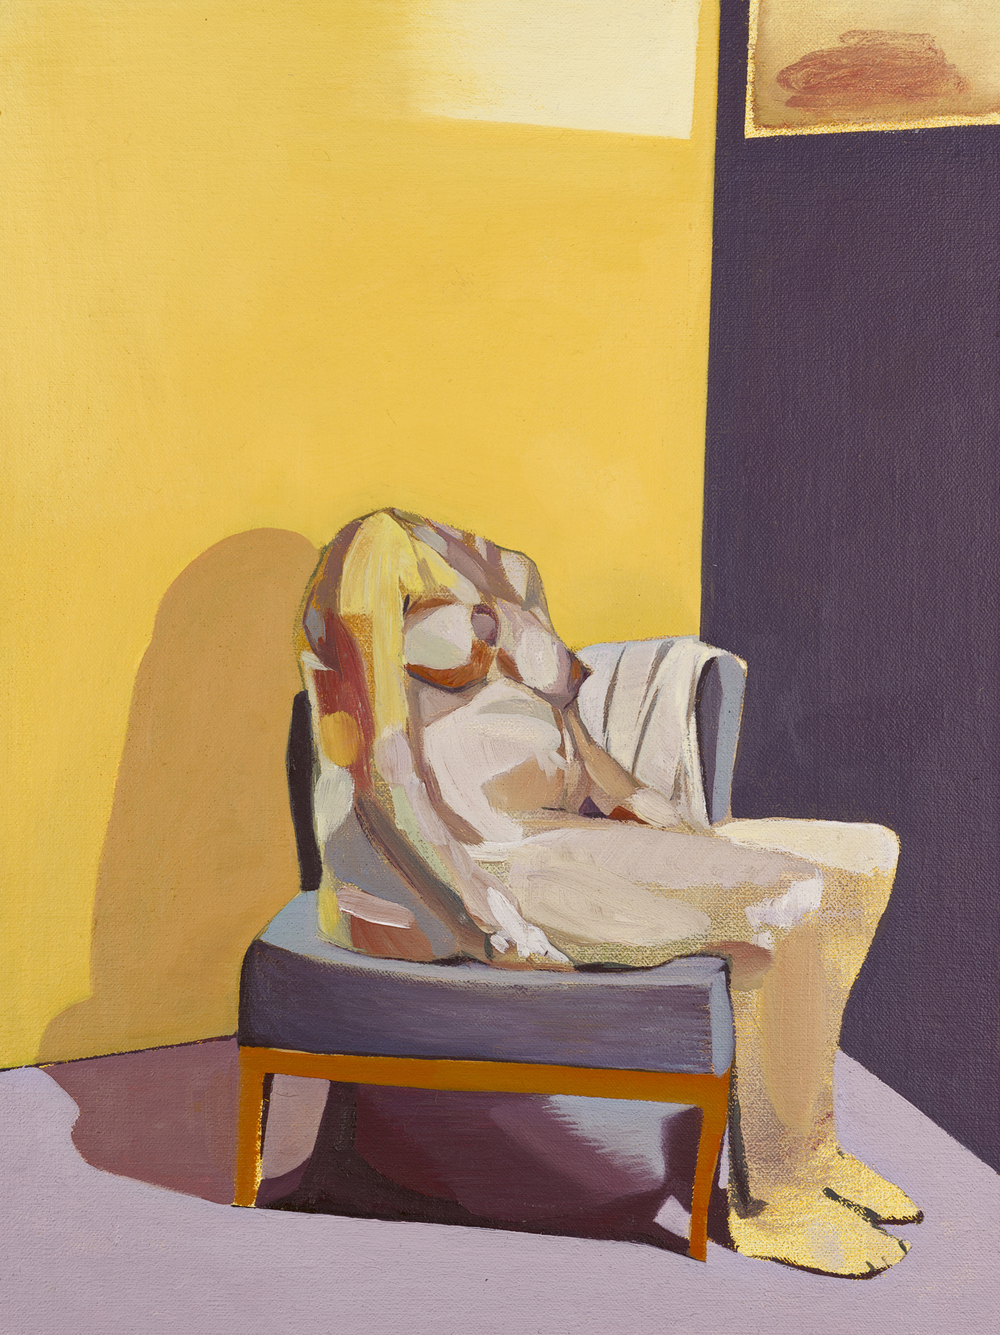 Headless Nude (Seated, Pregnant), 2015, oil on linen on board, 16 x 12in